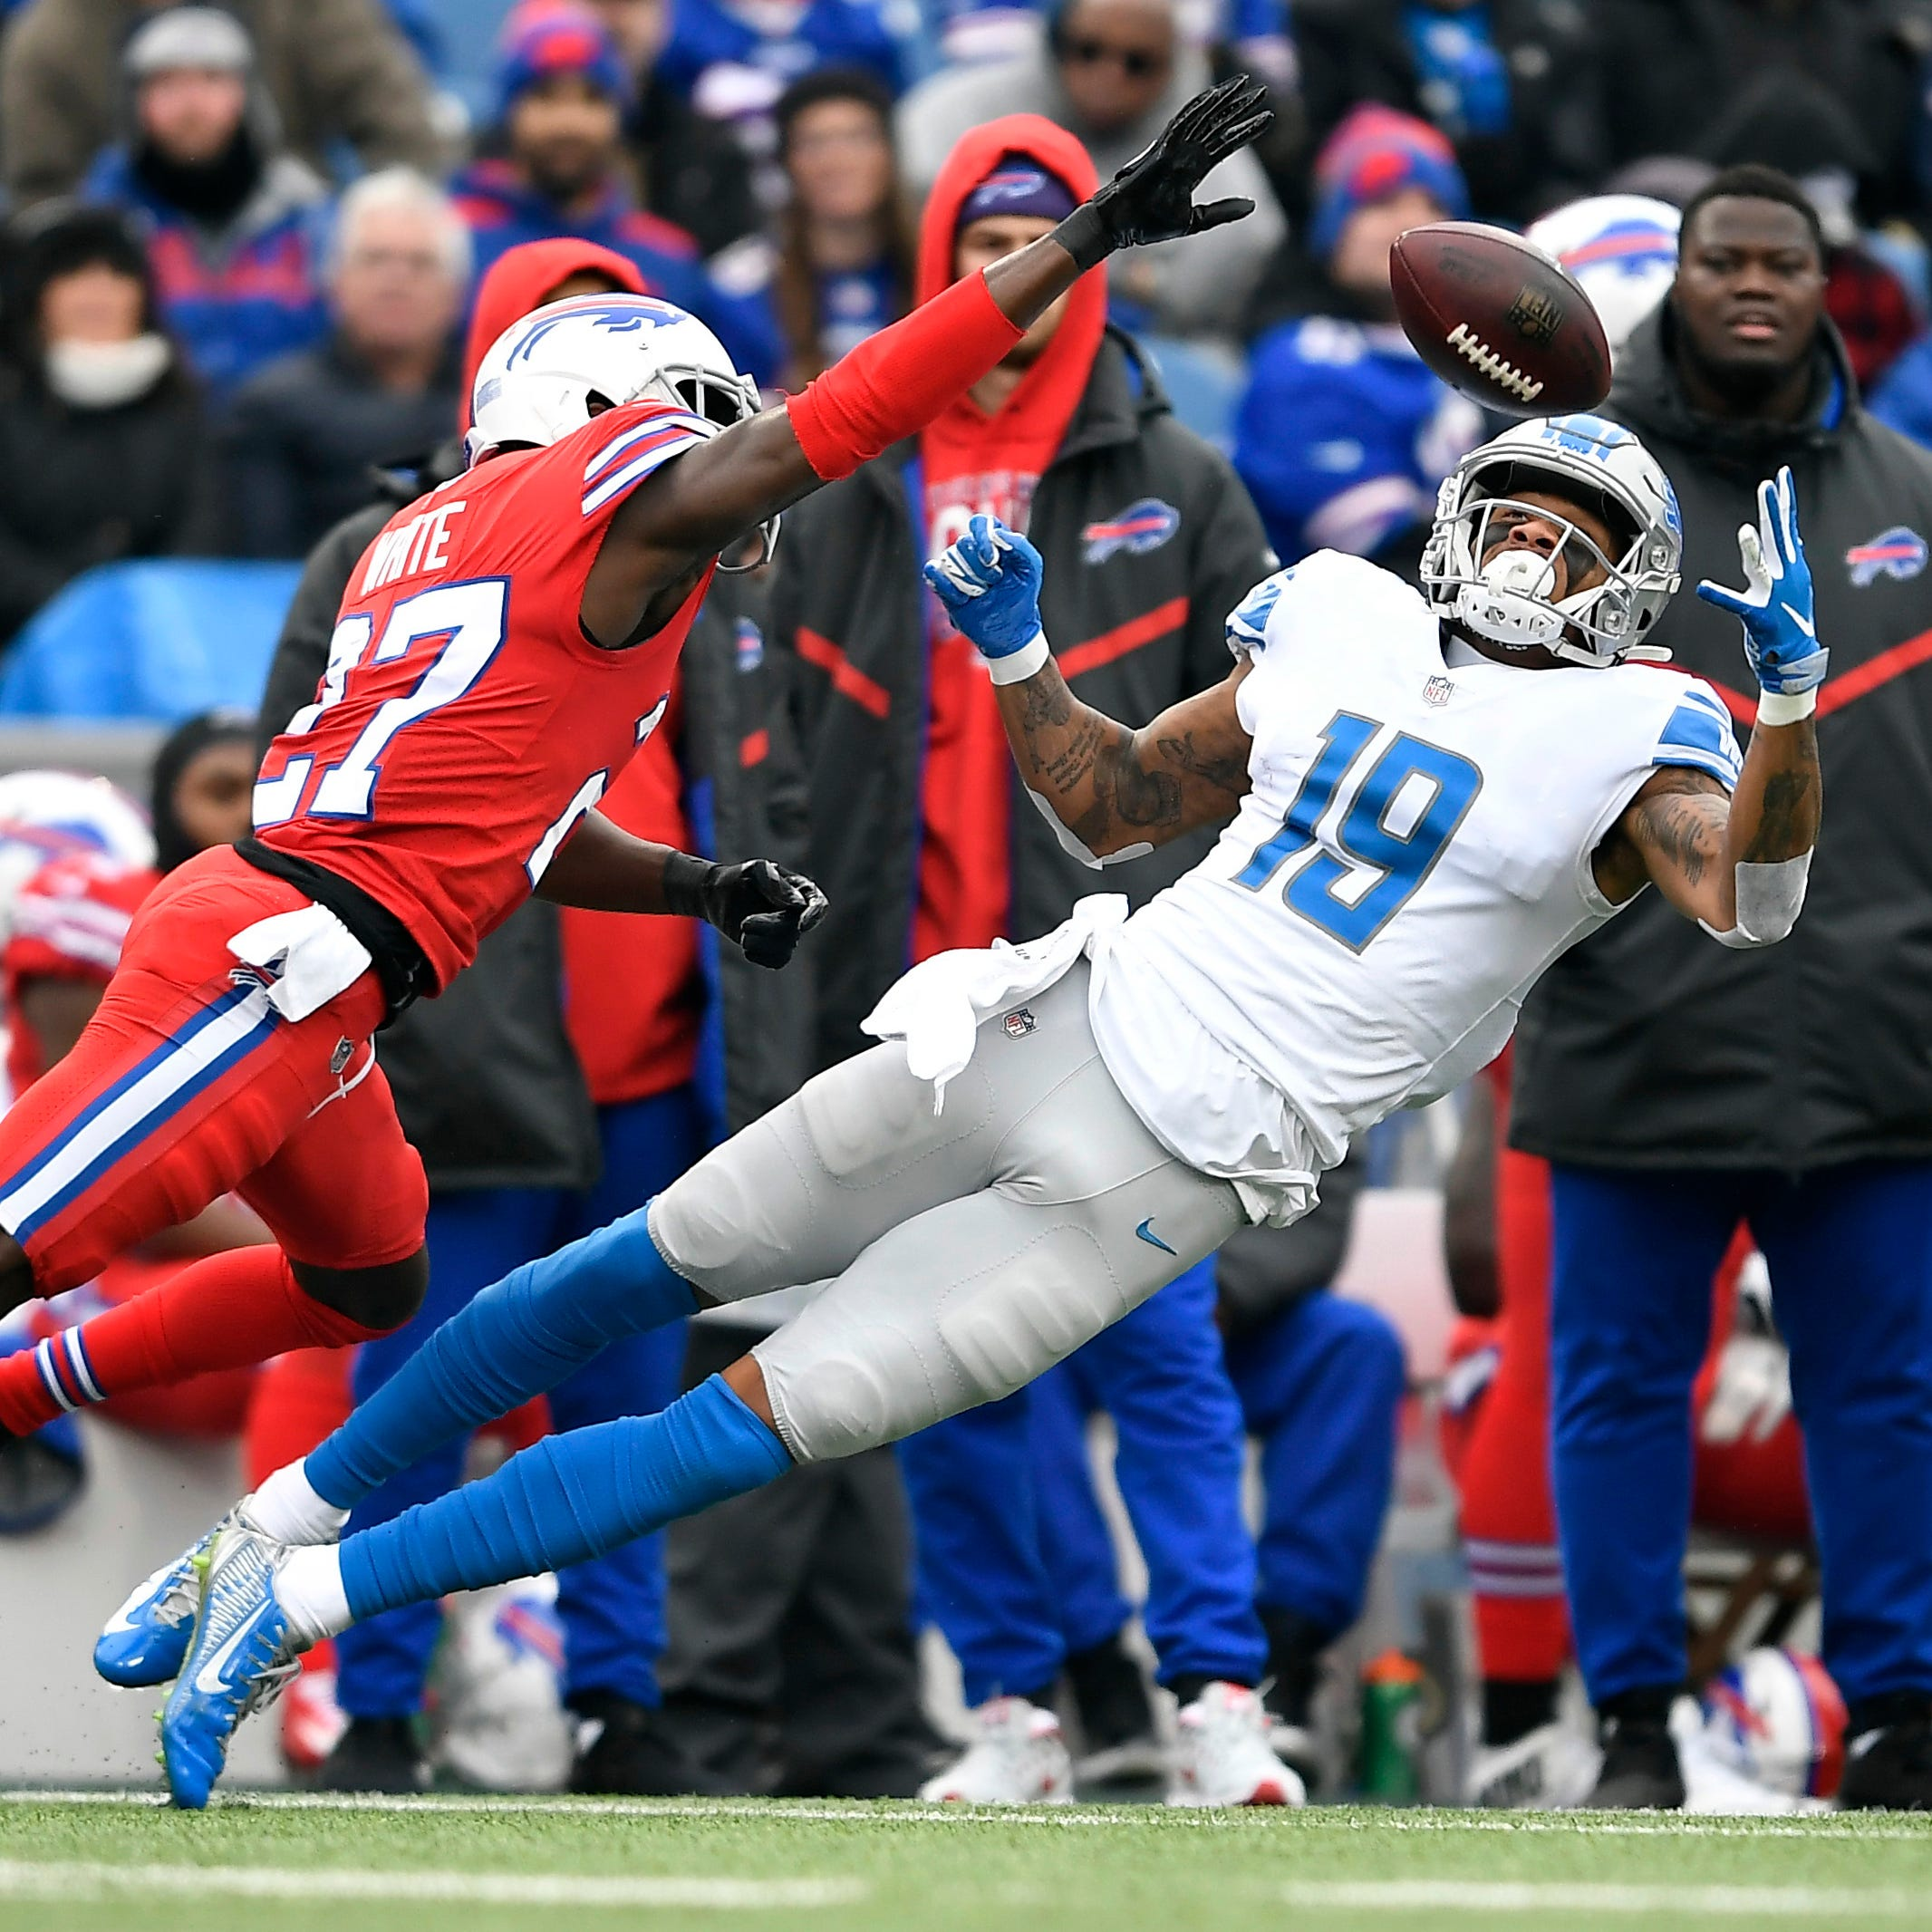 Lions boot shot at victory, eliminated from playoff contention